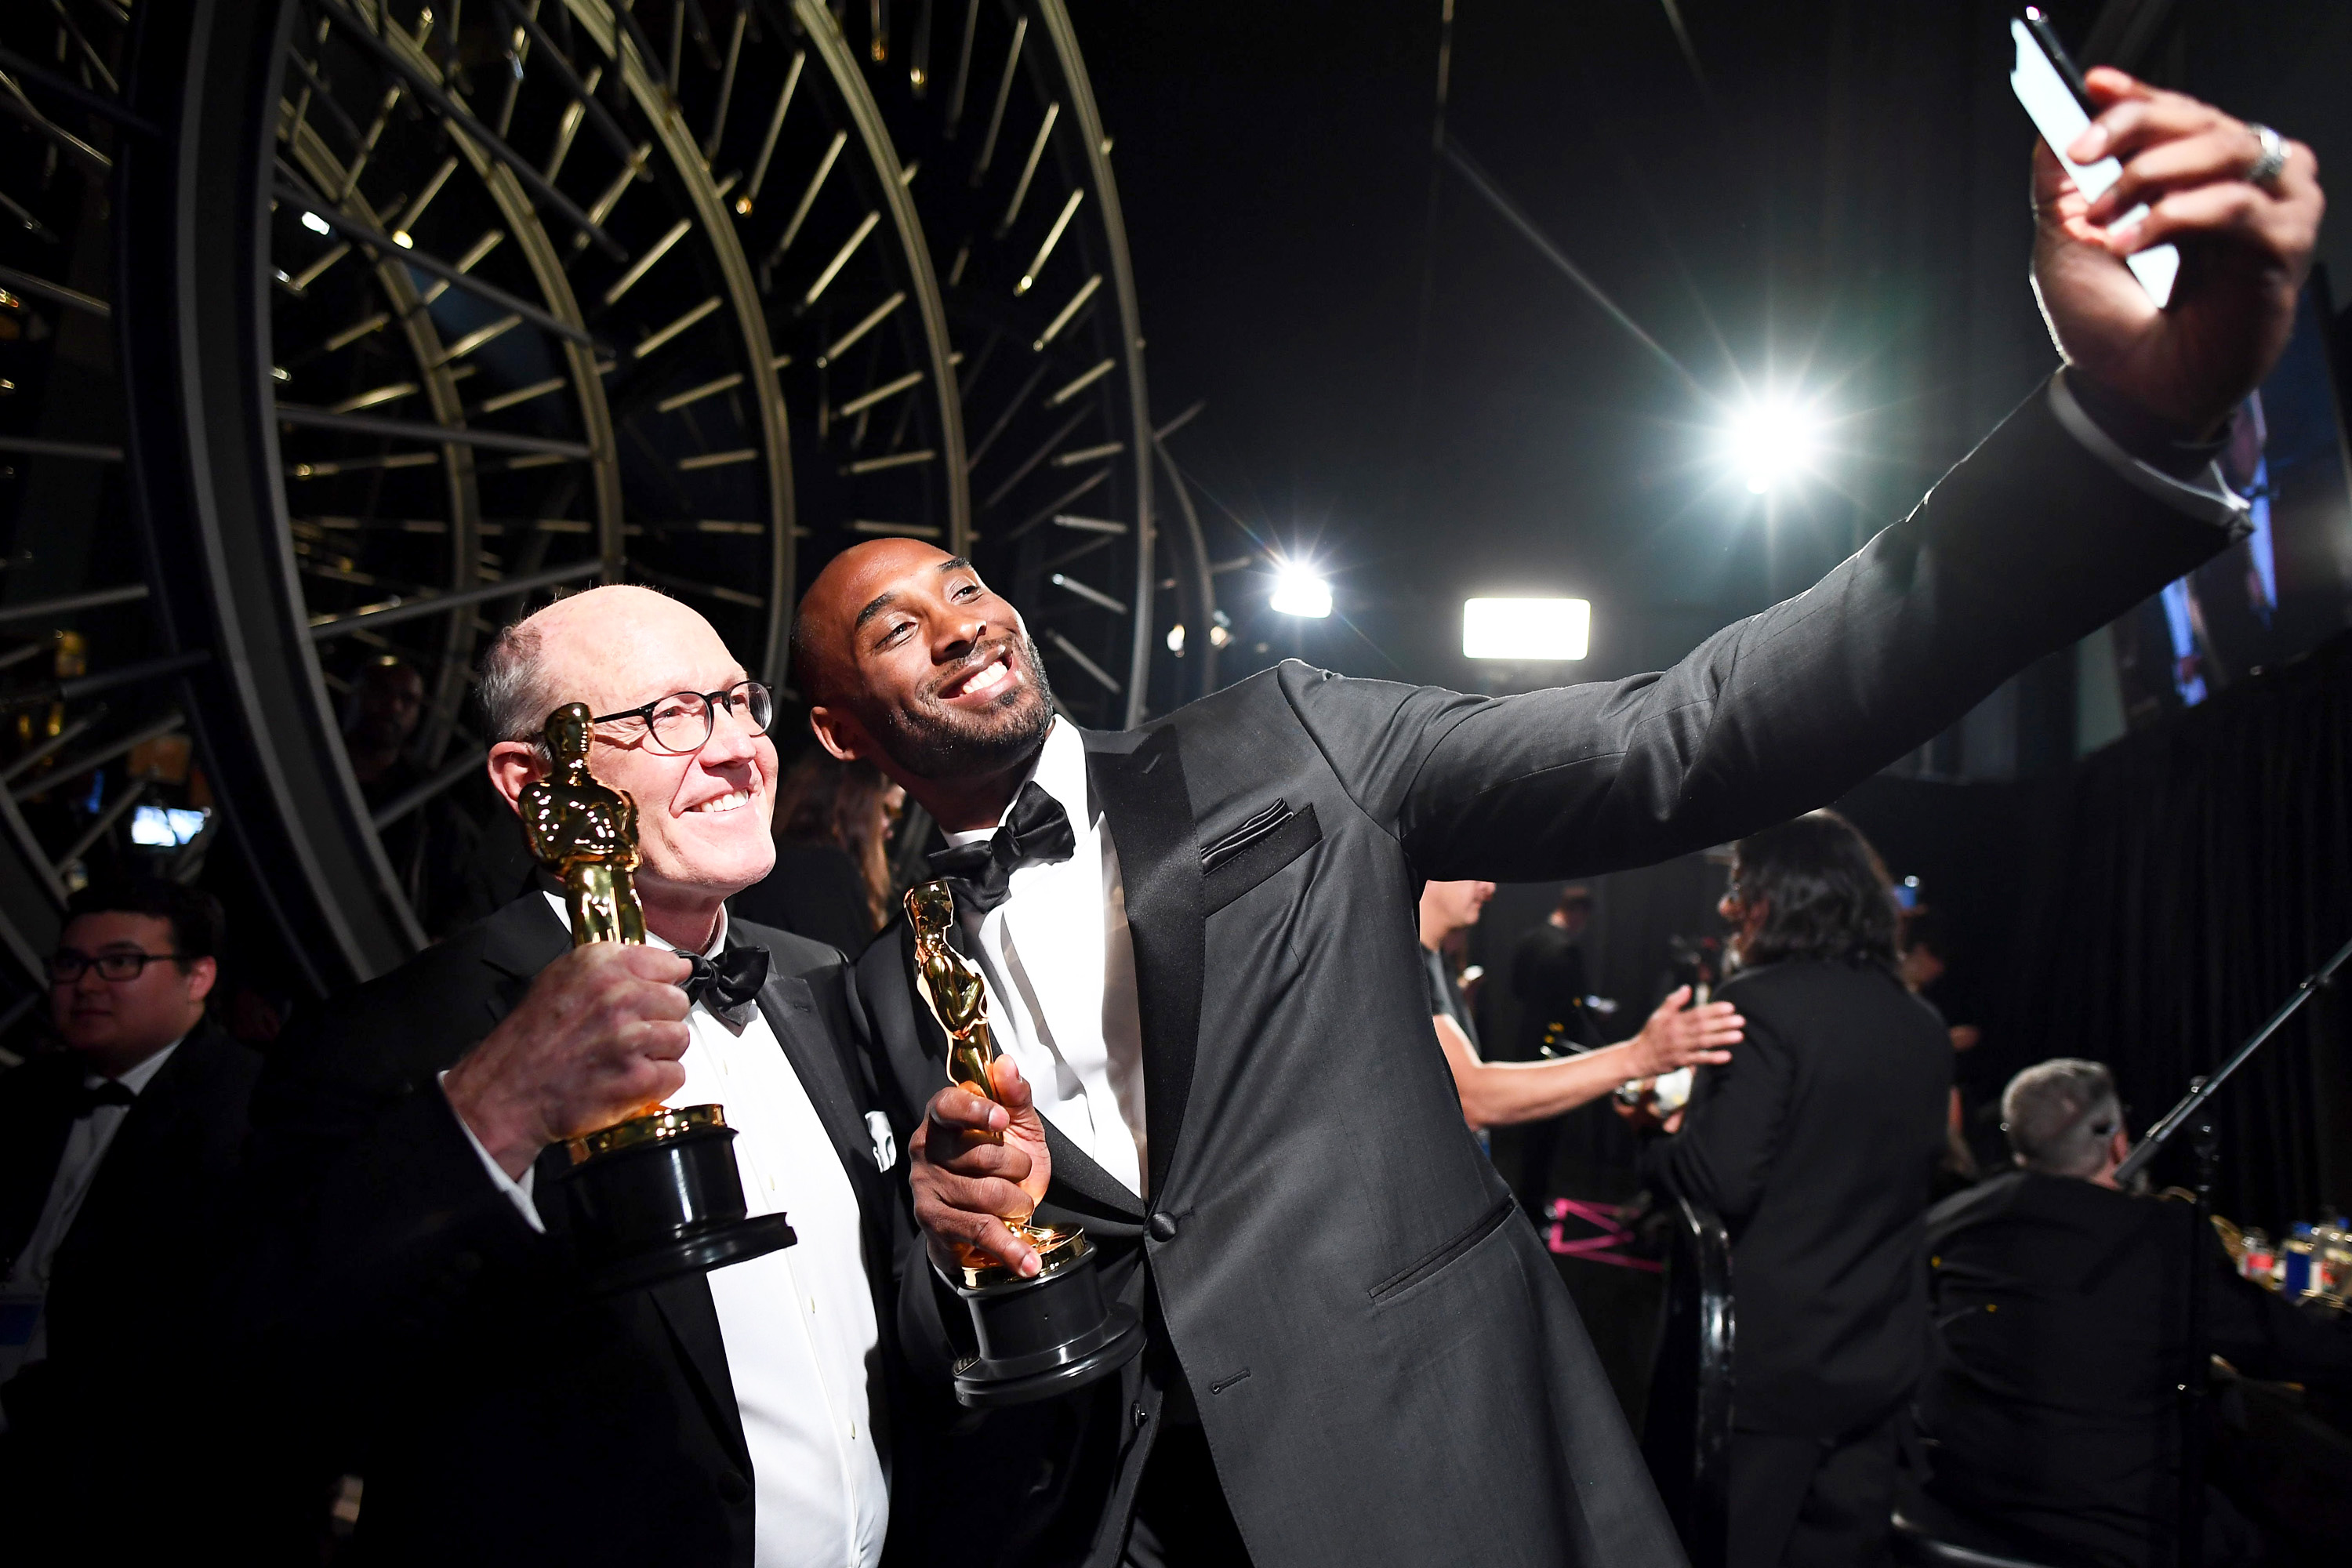 HOLLYWOOD, CA - MARCH 04: In this handout provided by A.M.P.A.S., Glen Keane and Kobe Bryant attend the 90th Annual Academy Awards at the Dolby Theatre on March 4, 2018 in Hollywood, California. (Photo by Matt Petit/A.M.P.A.S via Getty Images)